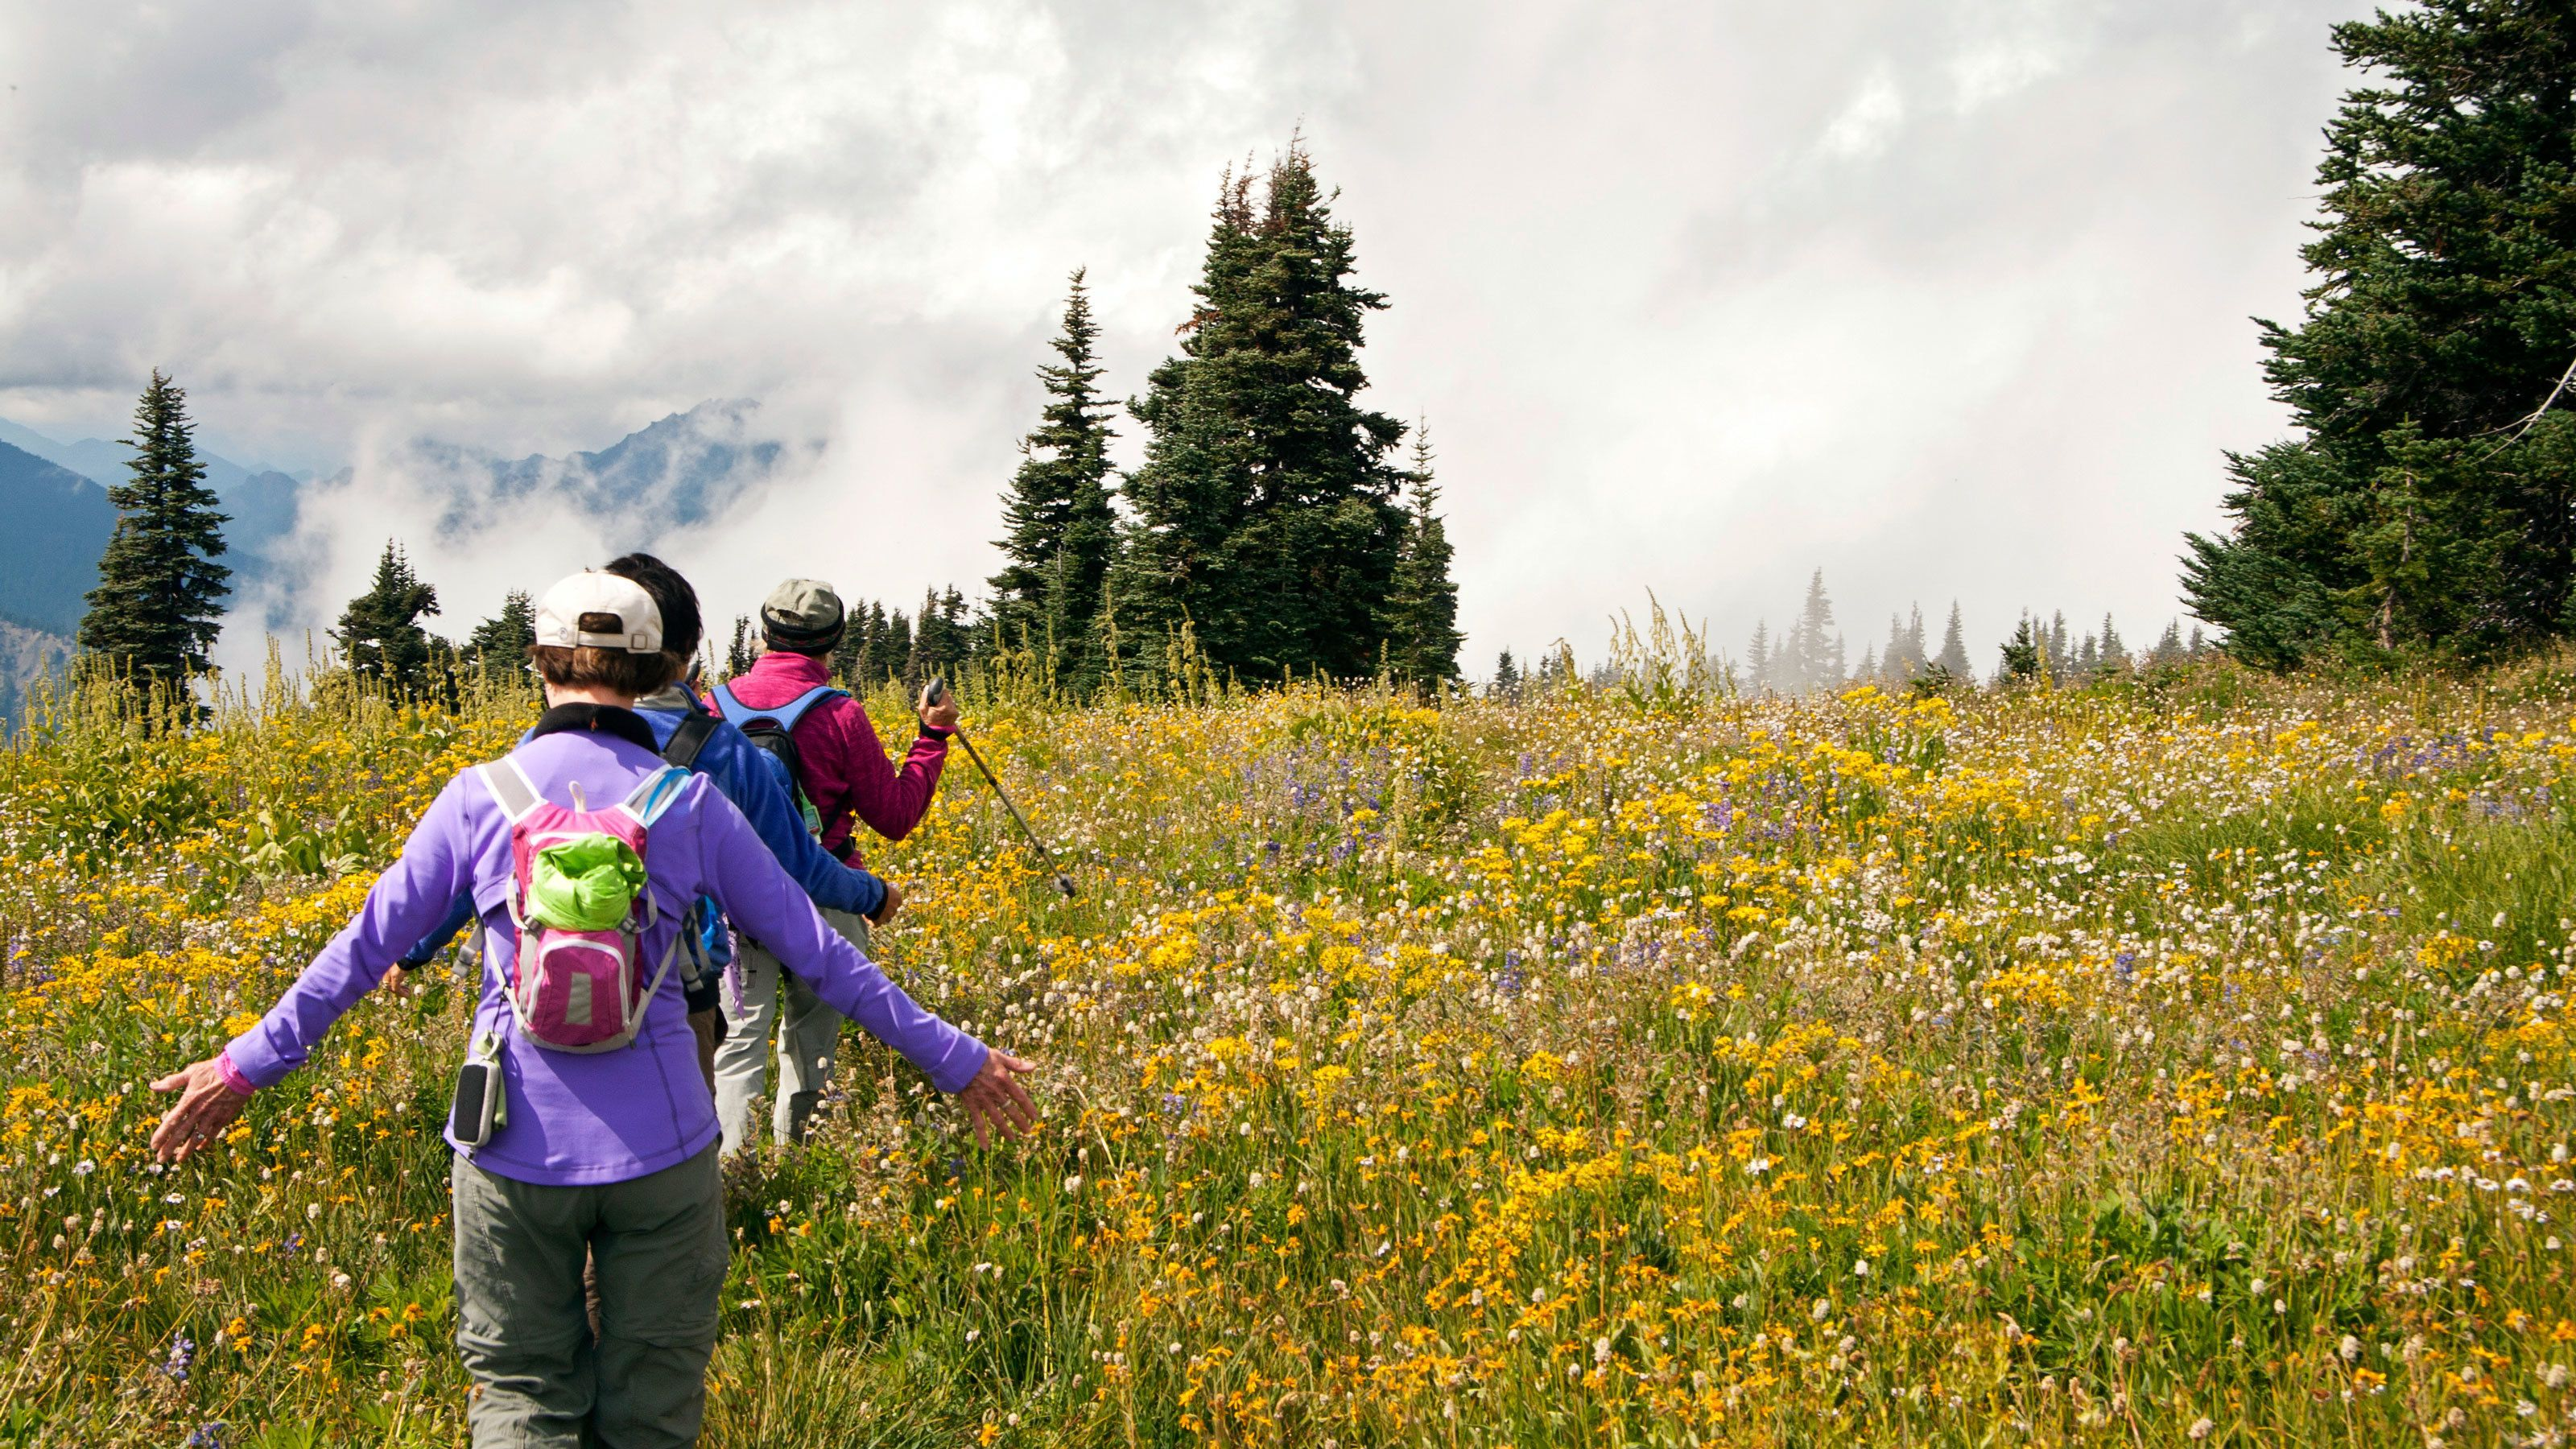 People hiking in a field of wild flowers in Olympic National Park in Washington